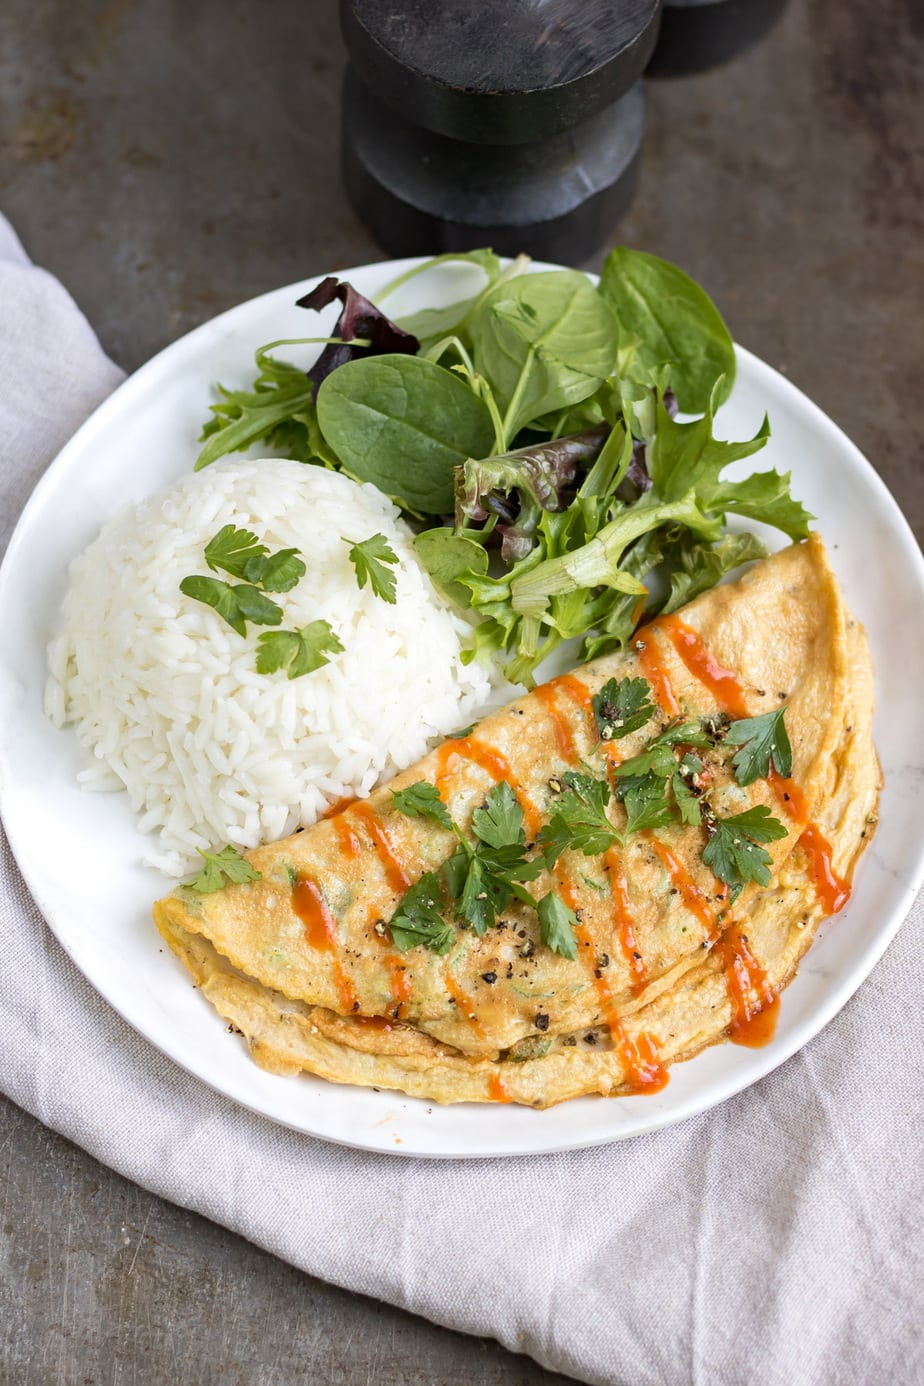 Plate with omelette, rice and salad.